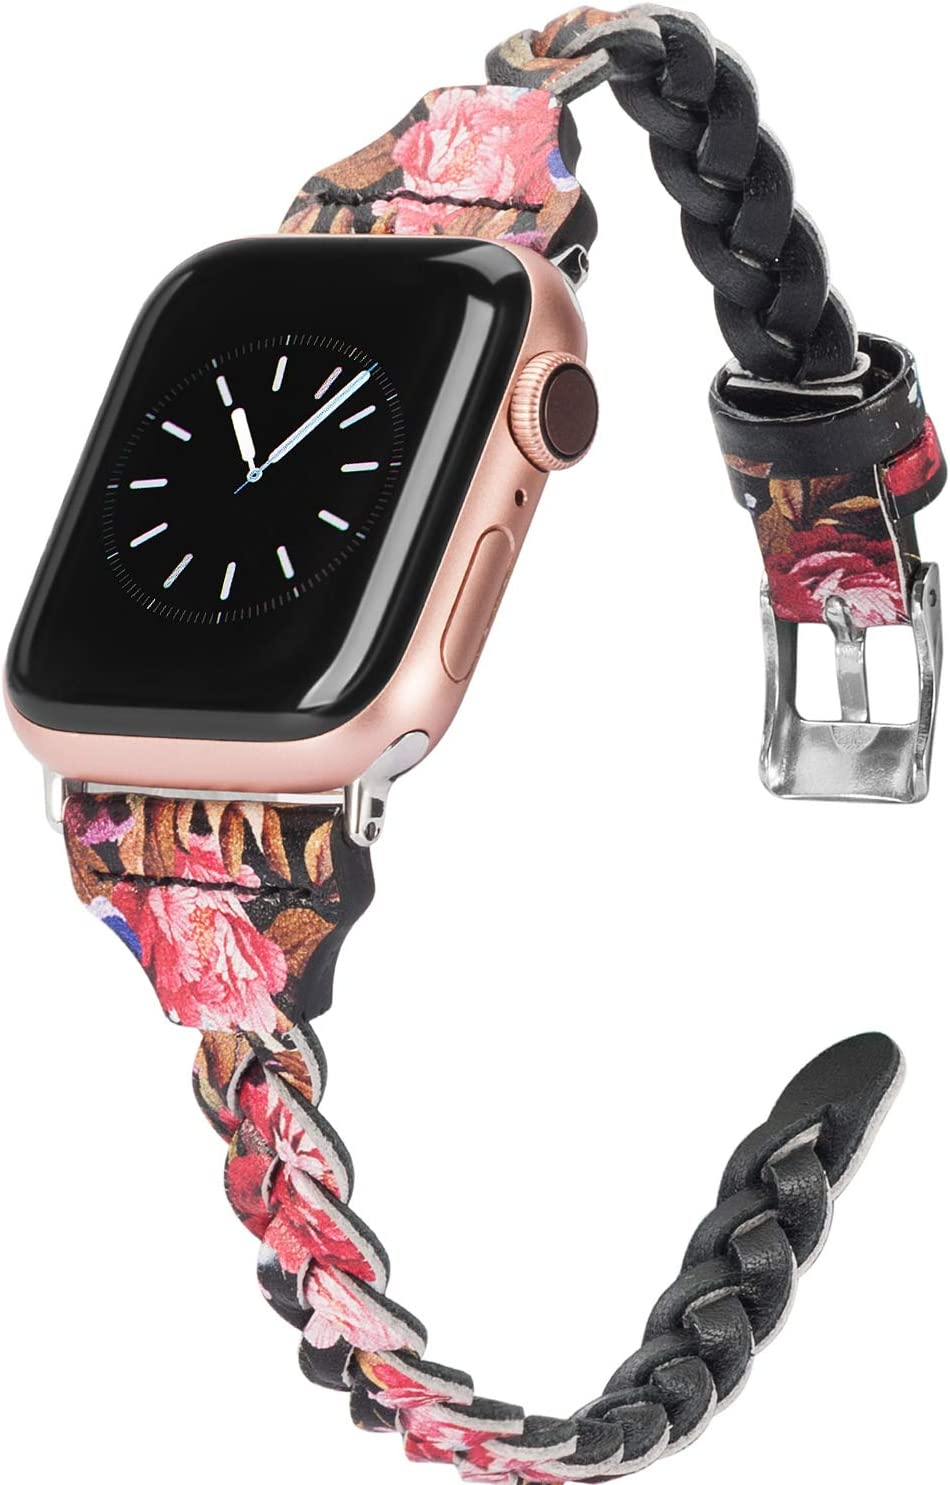 Wearlizer Floral Band Compatible with Apple Watch Band 38mm iWatch Bands 40mm Plait Style Slim Leather Replacement Wrist Band for Apple Watch SE Series 6 5 4 3 2 1